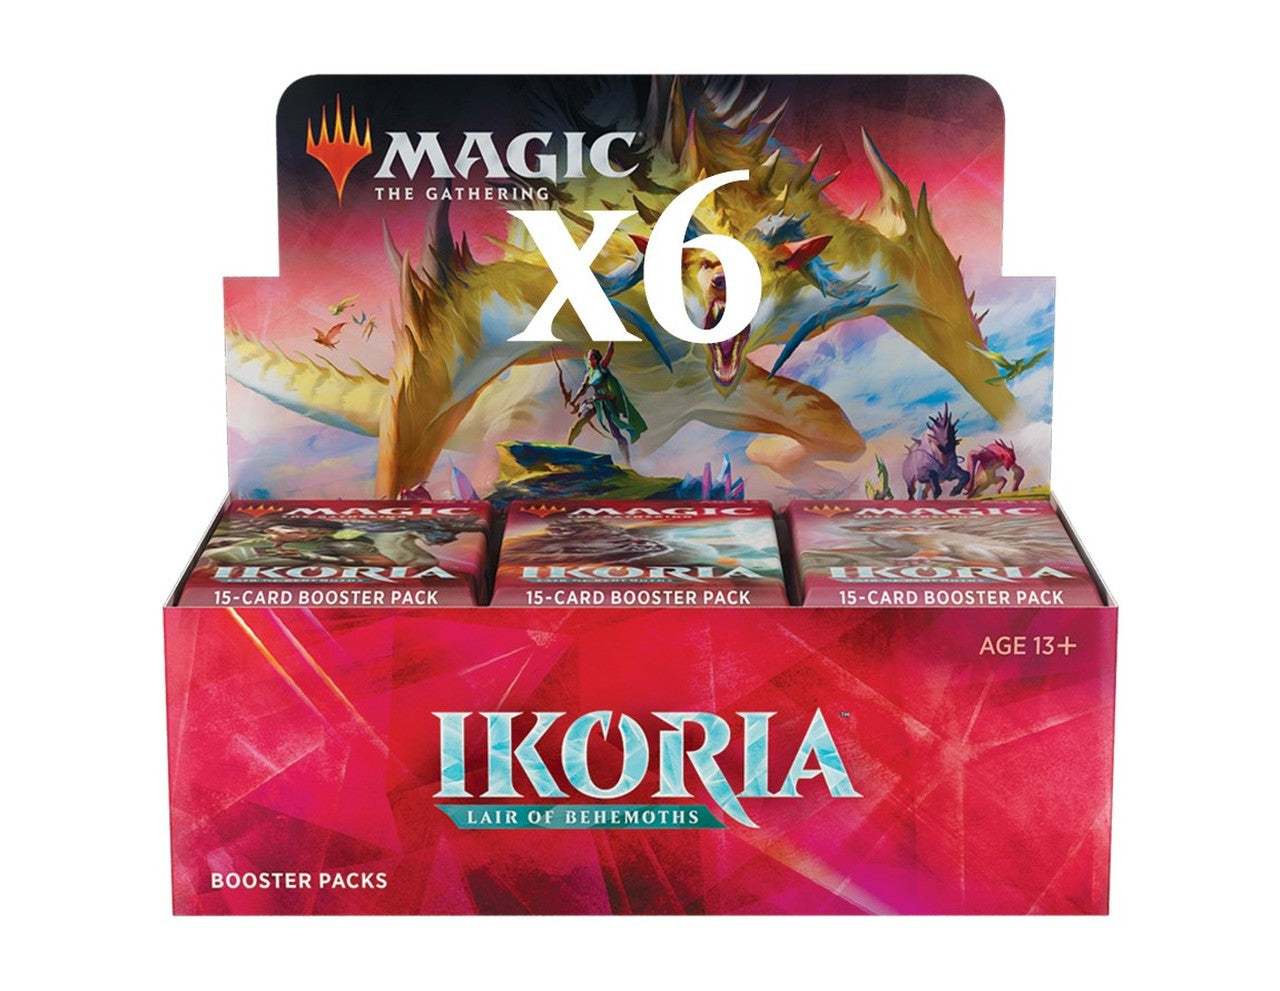 Ikoria: Lair of Behemoths Draft Booster Case (6 boxes) | Affinity Games